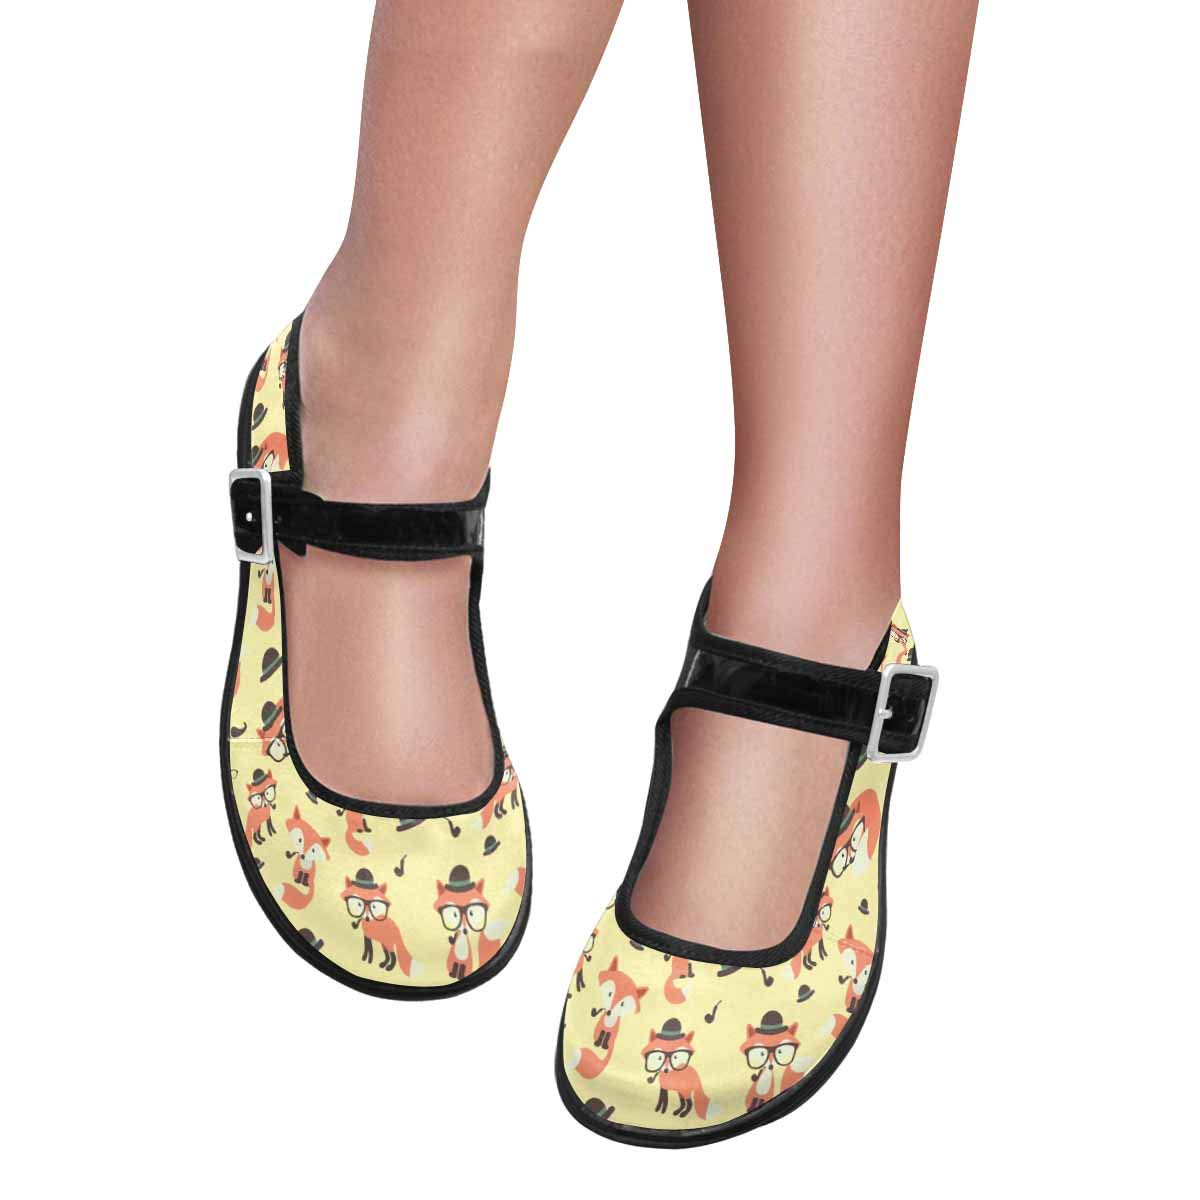 INTERESTPRINT Womens Slip-Resistant Mary Jane Flats for Dr Scholls Cute Cartoon Foxes